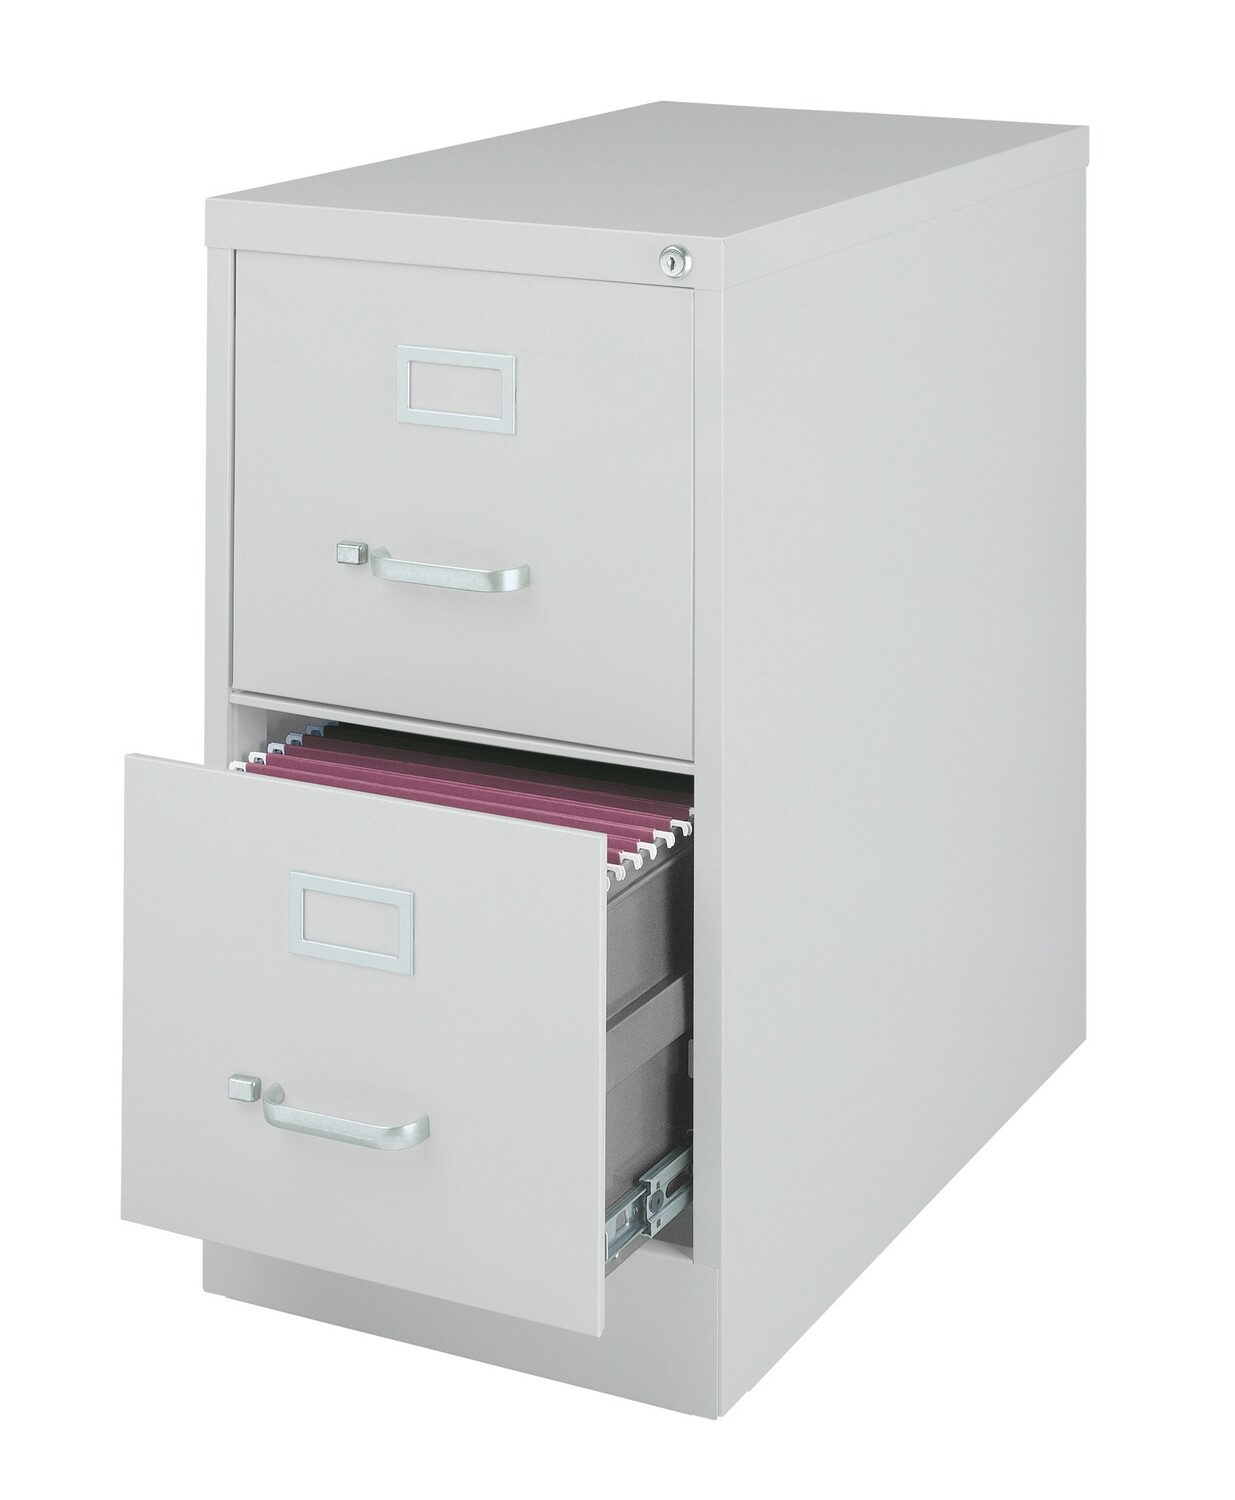 Vertical File Cabinet, 2-Drawer, LETTER, Gray